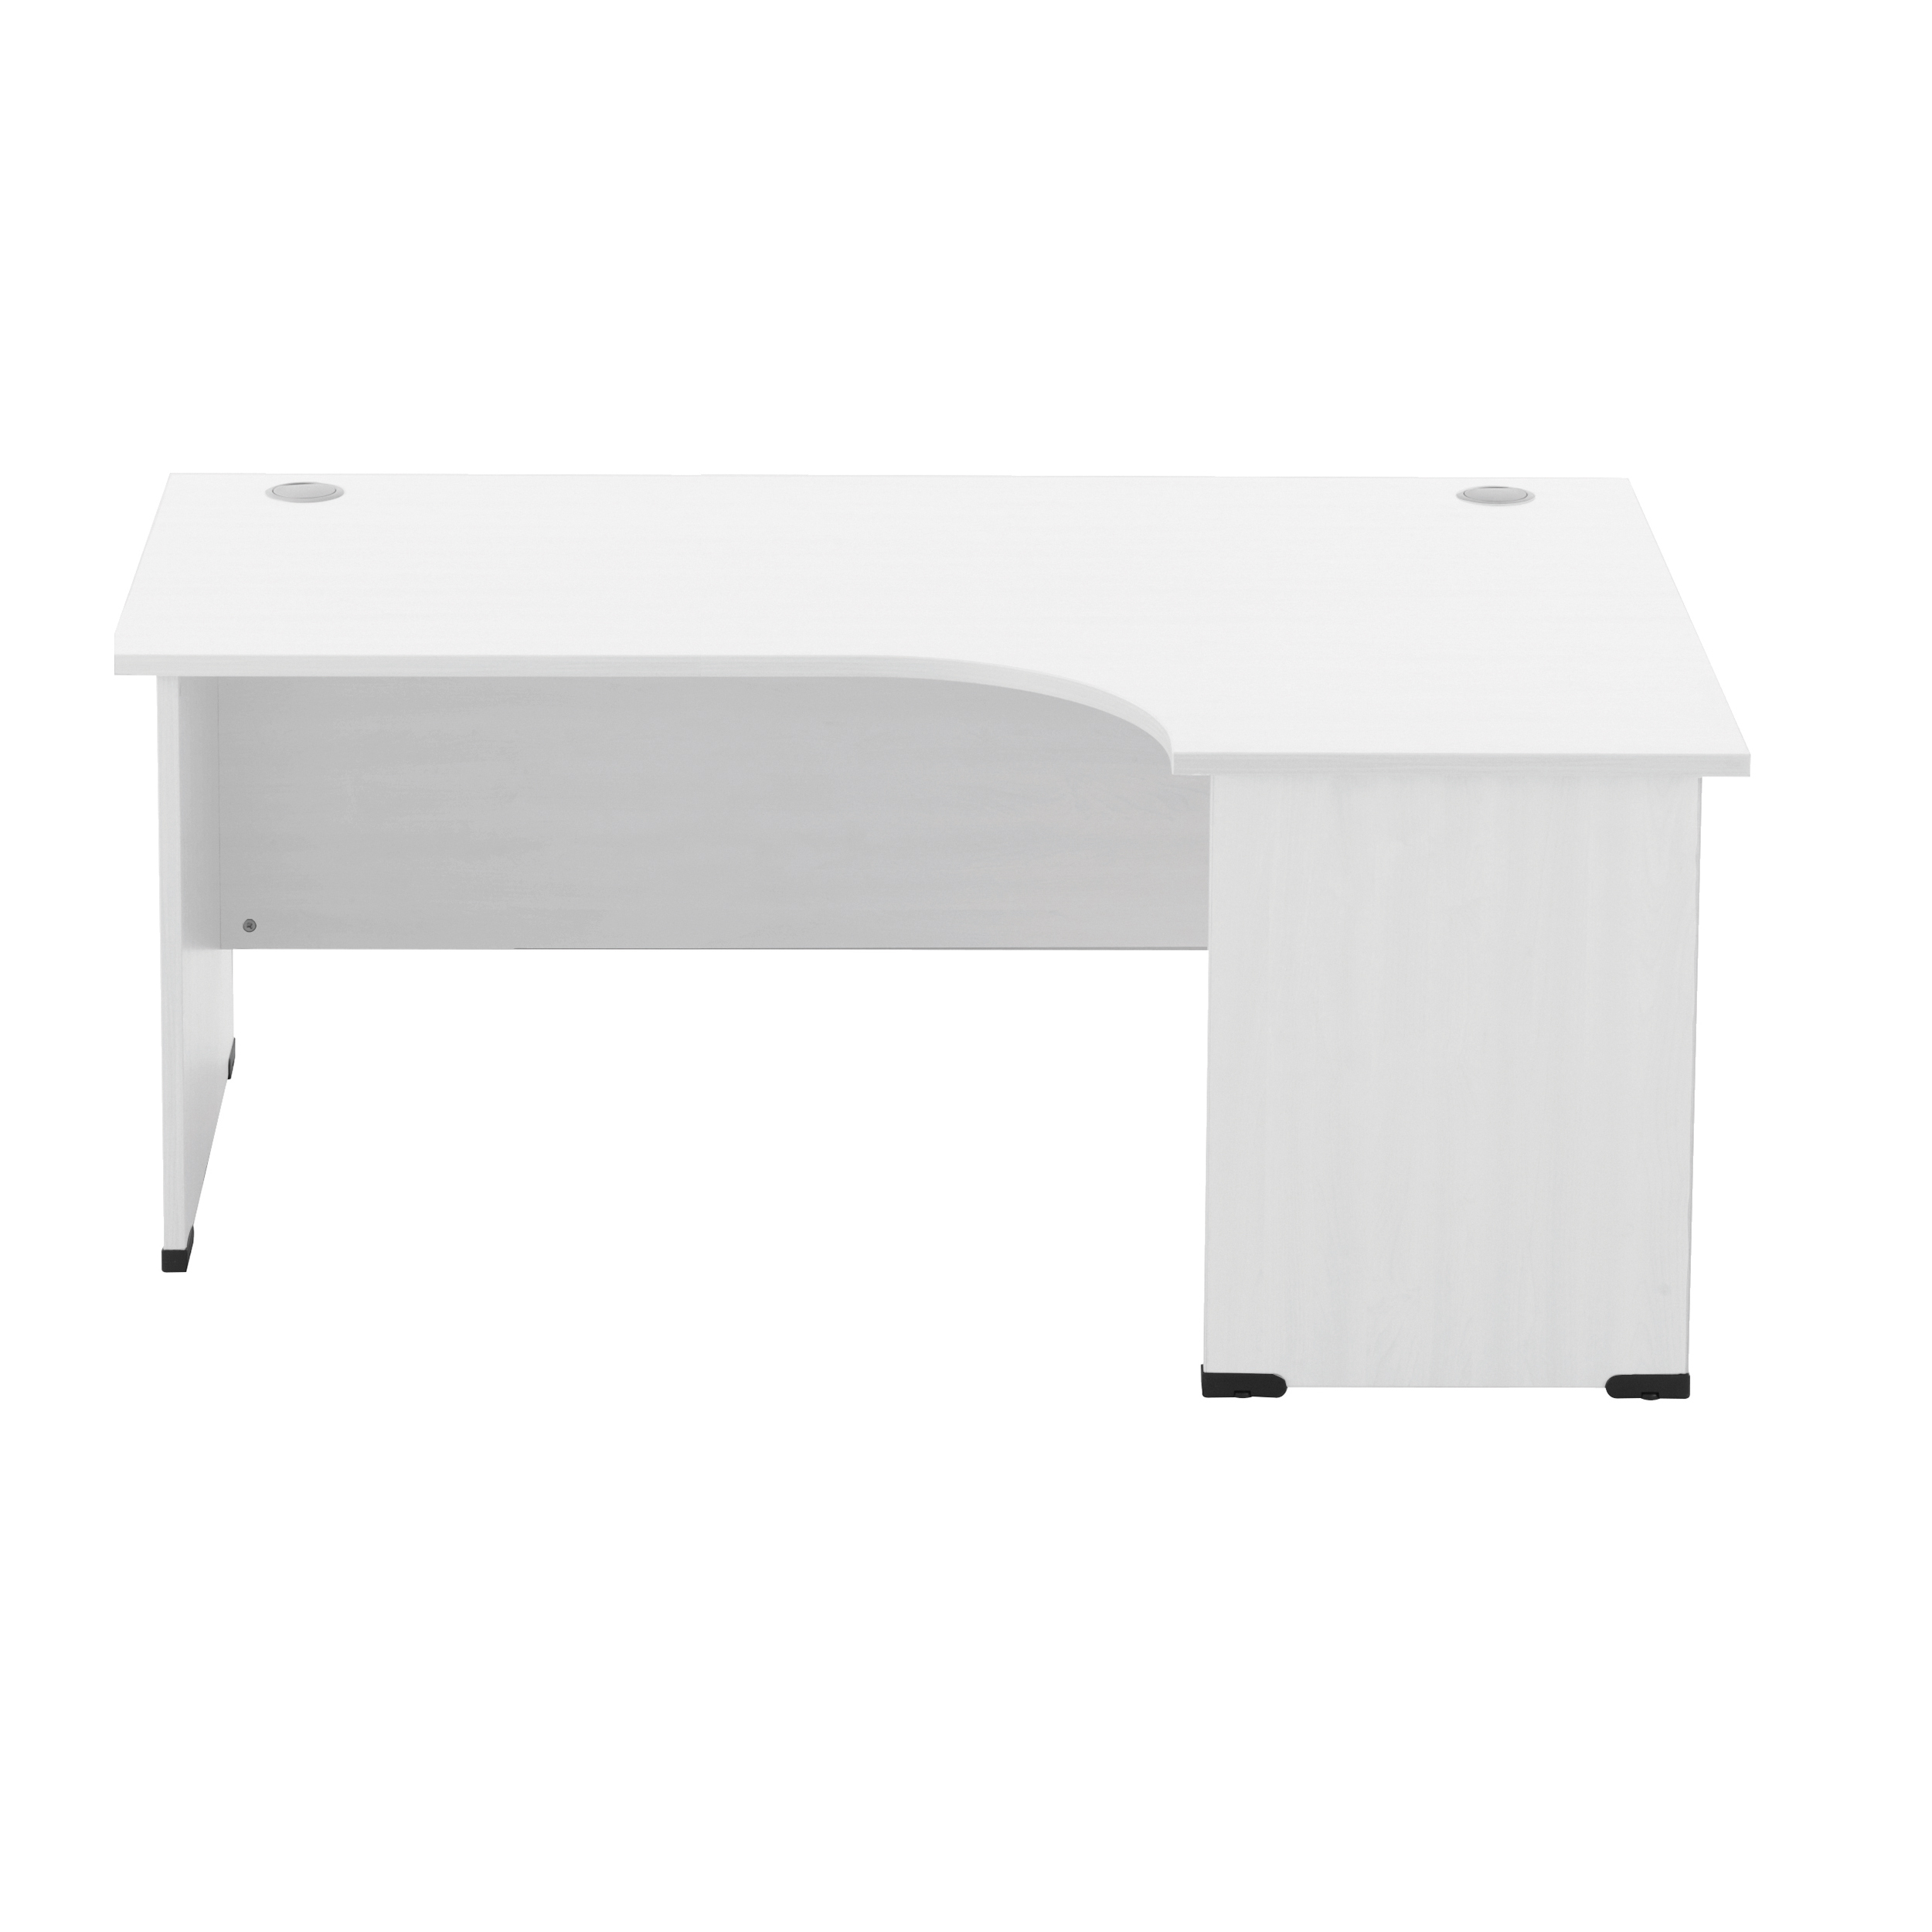 Sonix Radial Desk Right Hand Panel End Legs 1800/1170mm Polar White Ref w9411rwh